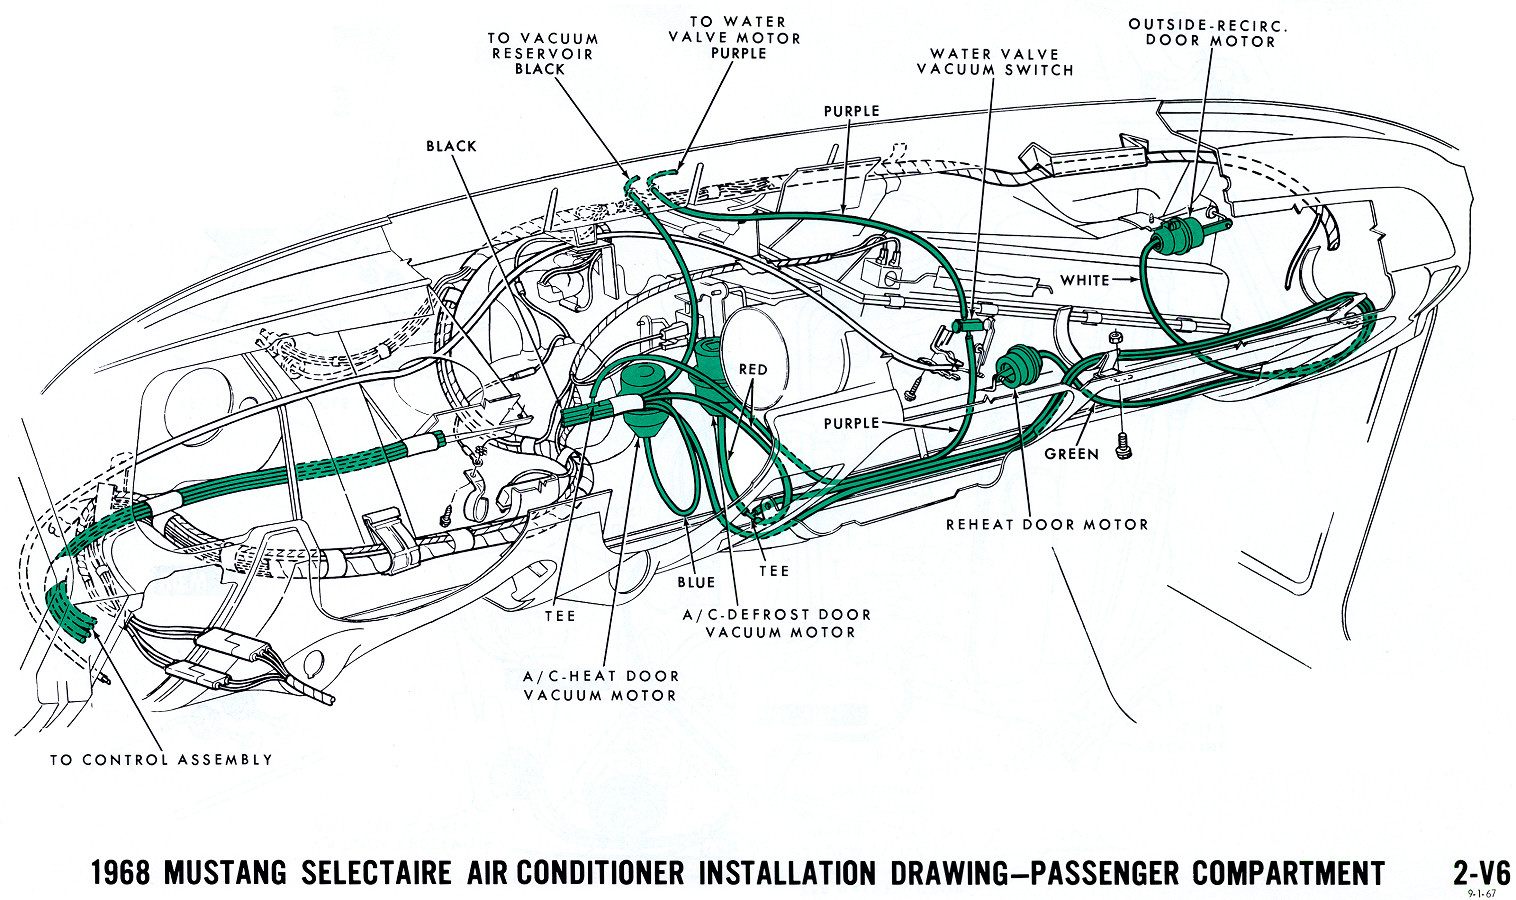 1968 mustang vacuum diagram air conditioning interior 1968 mustang wiring diagrams and vacuum schematics average joe 1967 Mustang Wiring Schematic at crackthecode.co